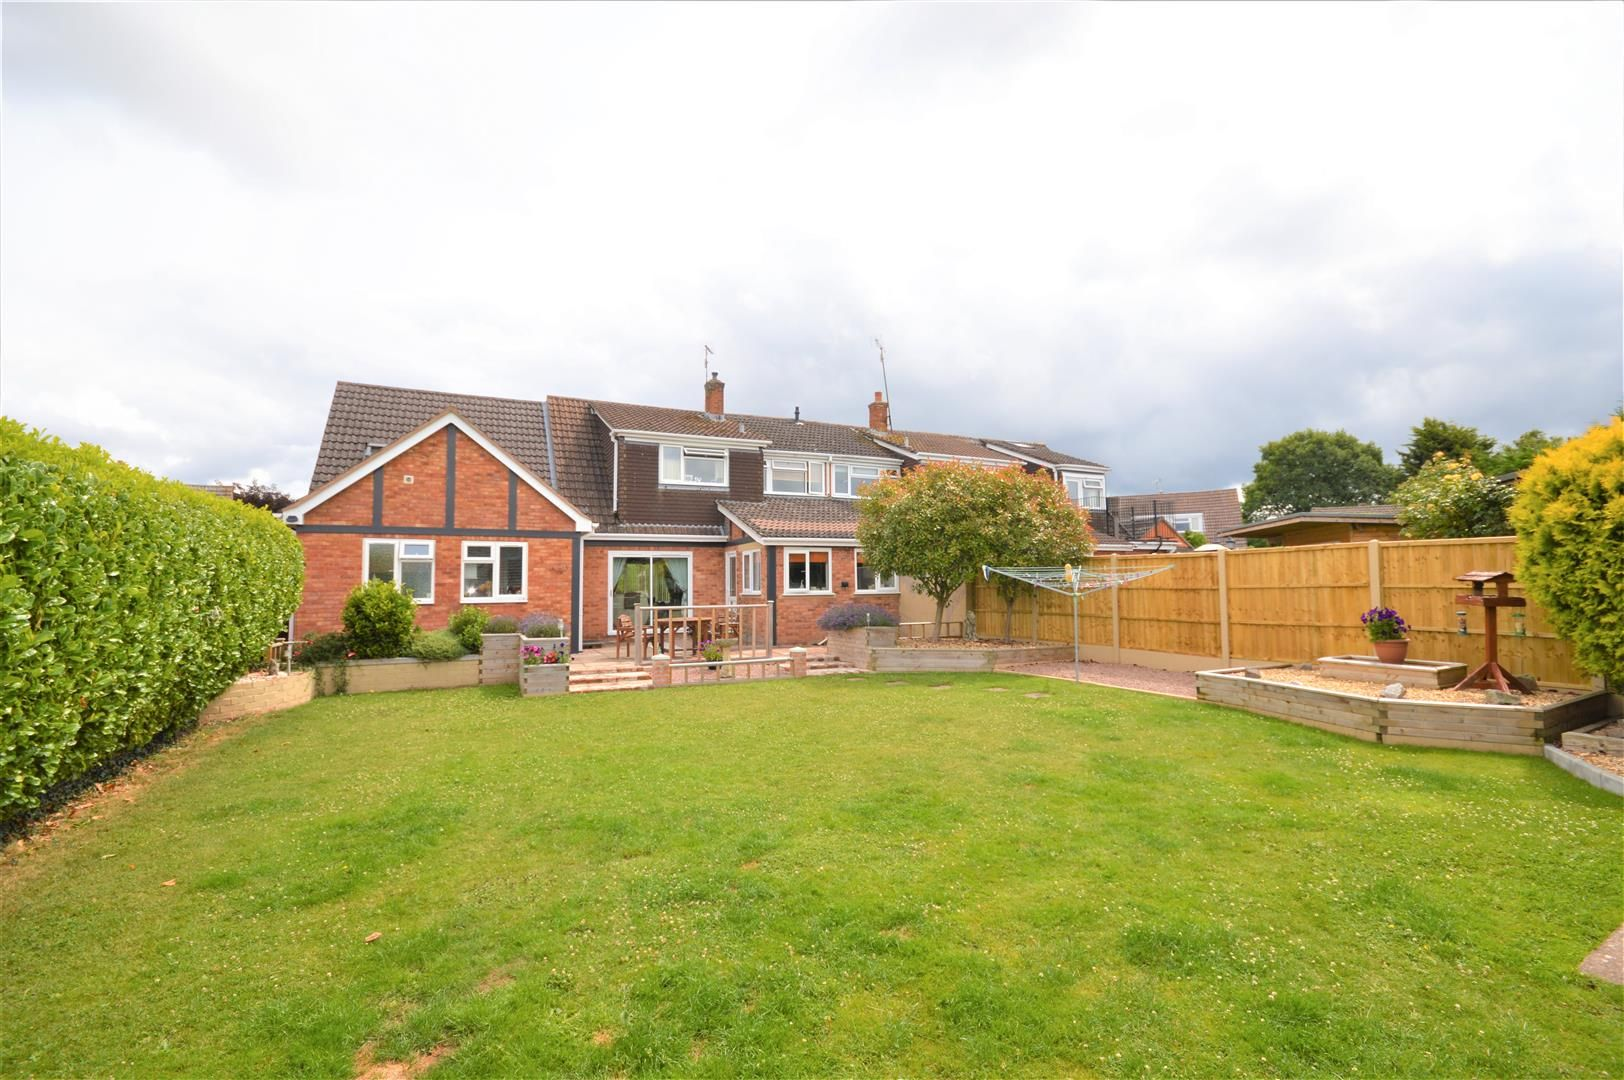 4 bed semi-detached for sale in Clehonger 2